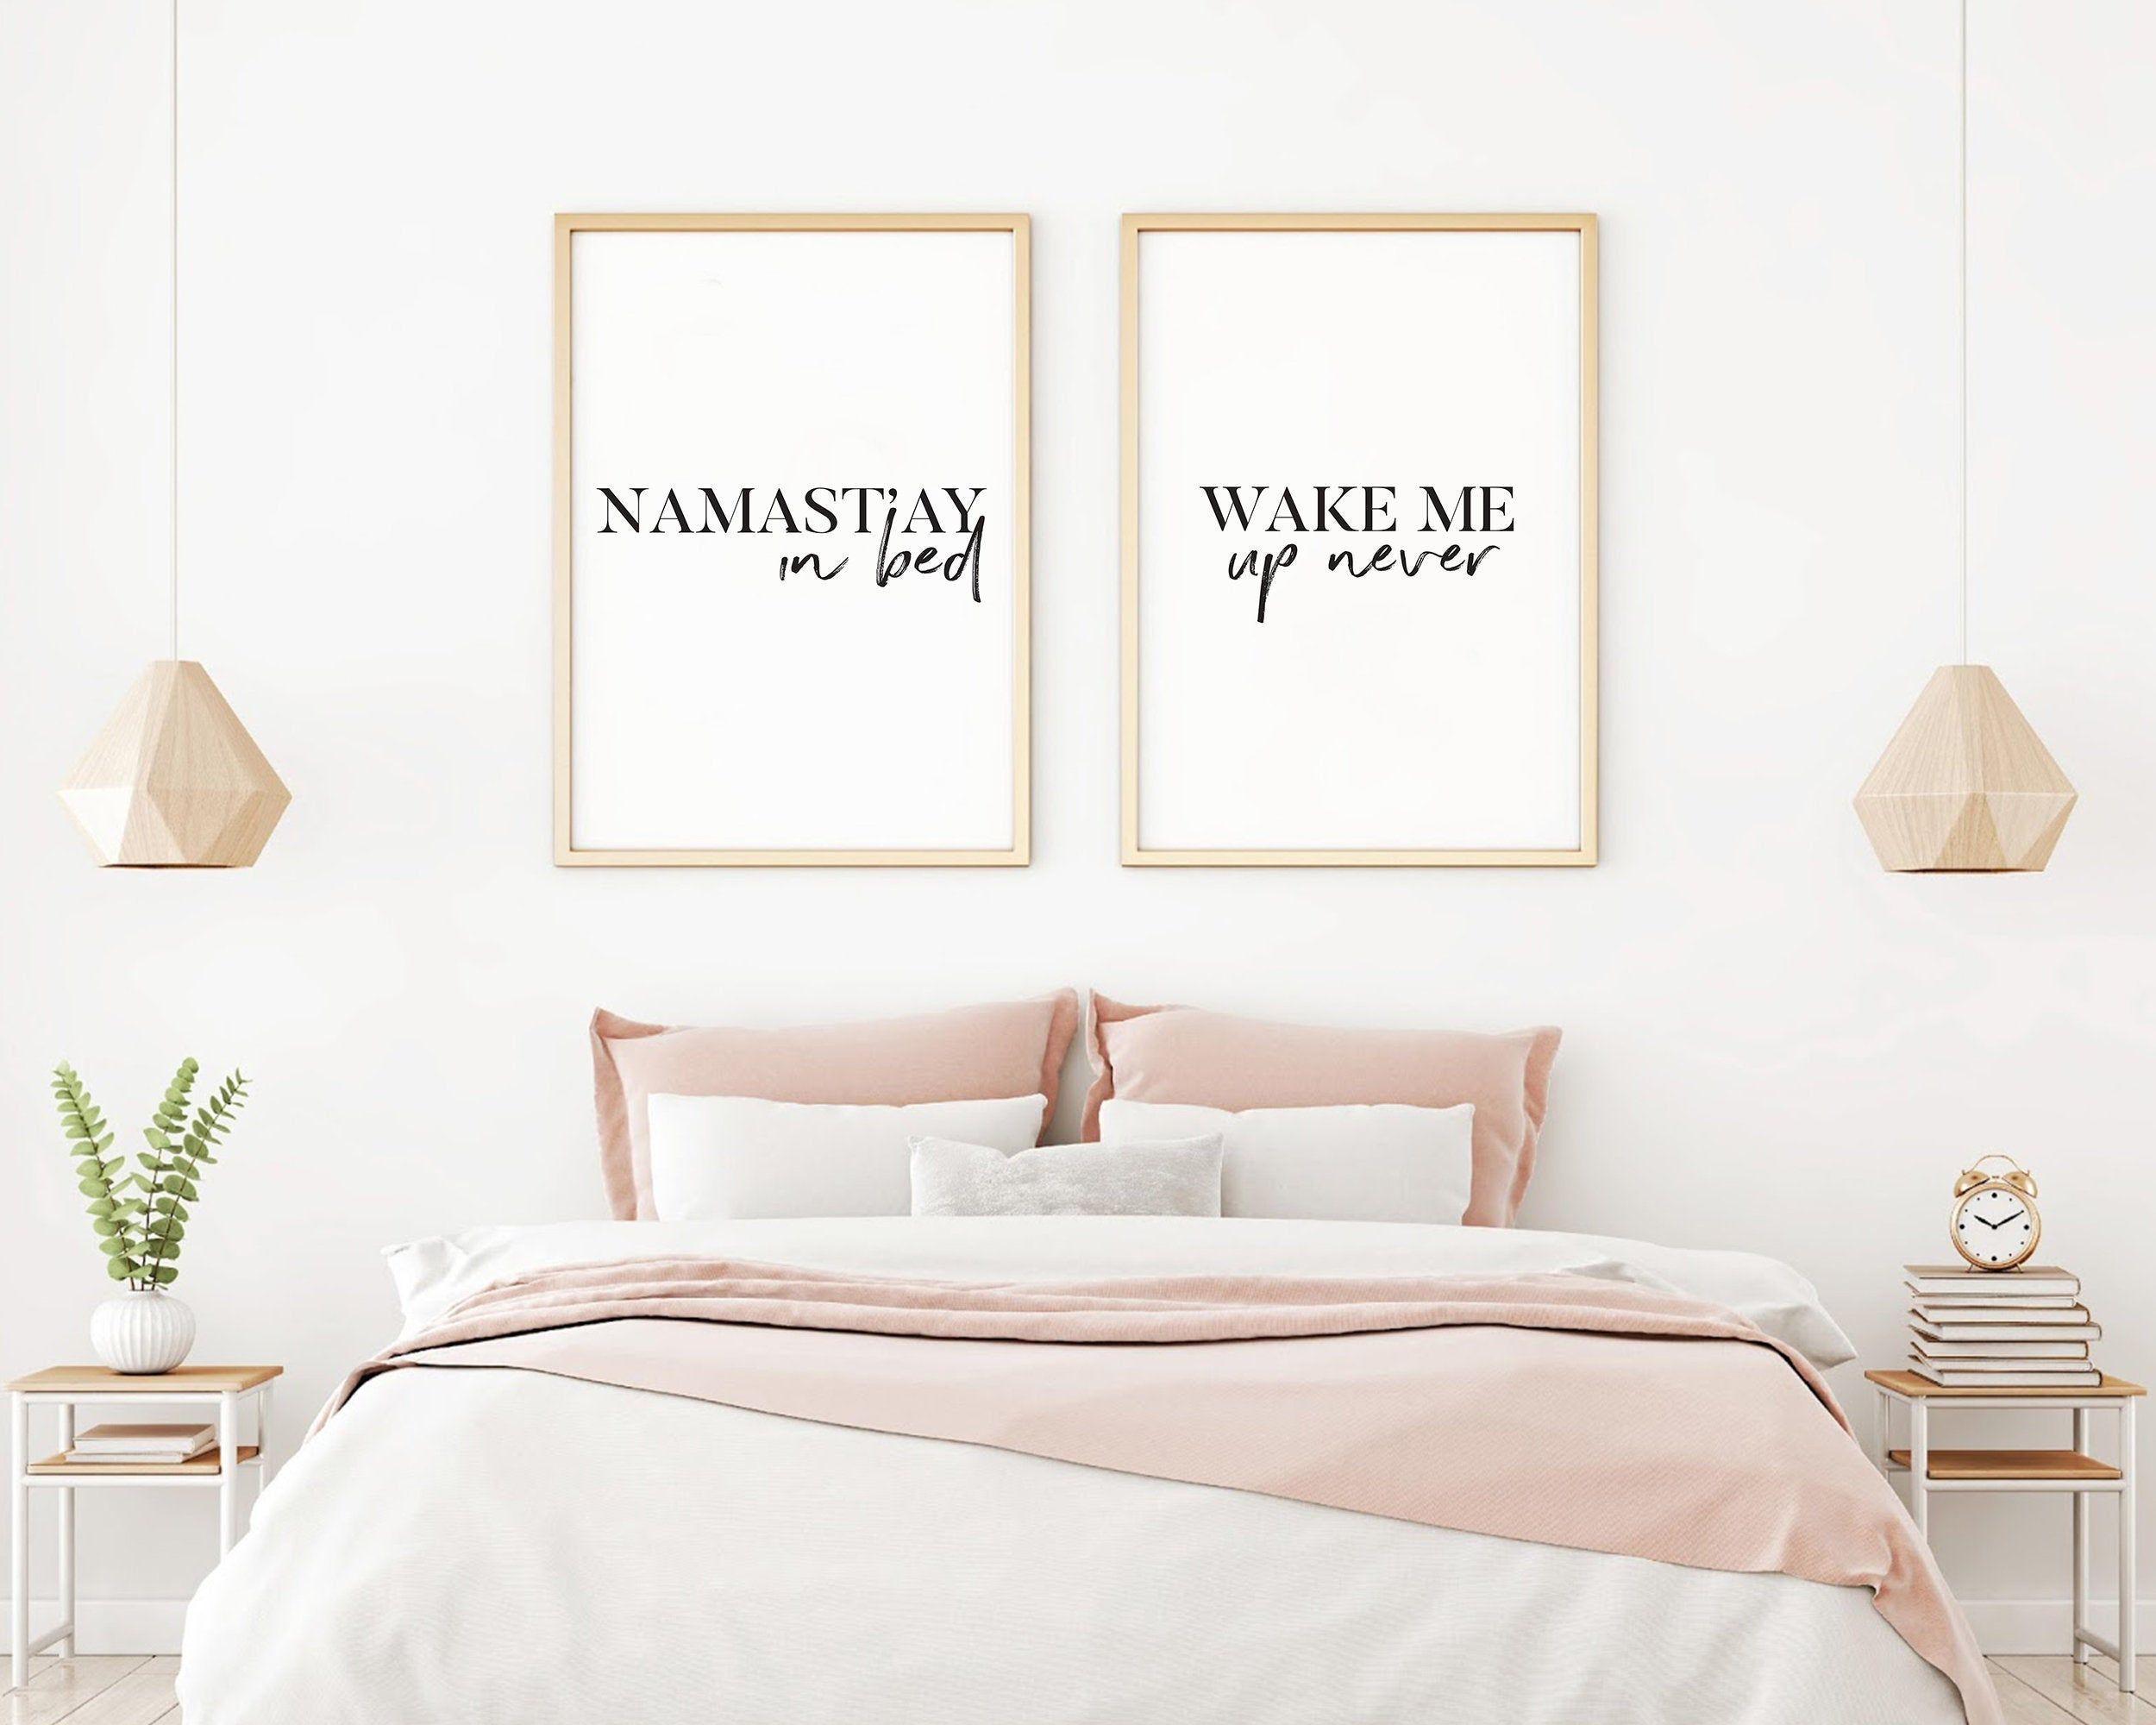 Namastay In Bed Print Wake Me Up Never Wall Art Fun Wall Etsy Printable Bedroom Decor Bedroom Wall Above Bed Decor